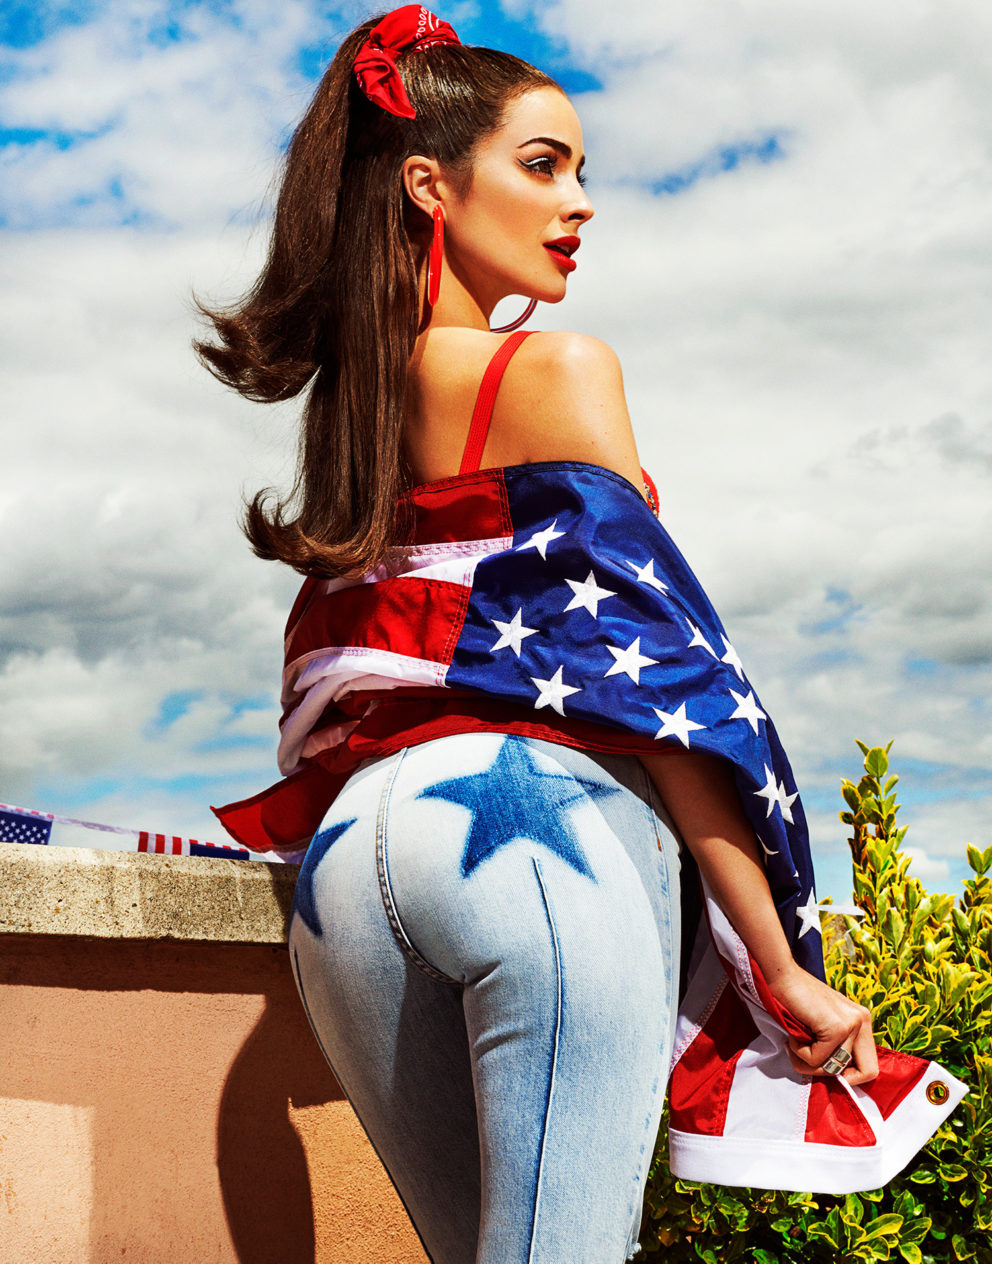 180615 Sbjct Olivia Culpo By Christian Hogstedt 05